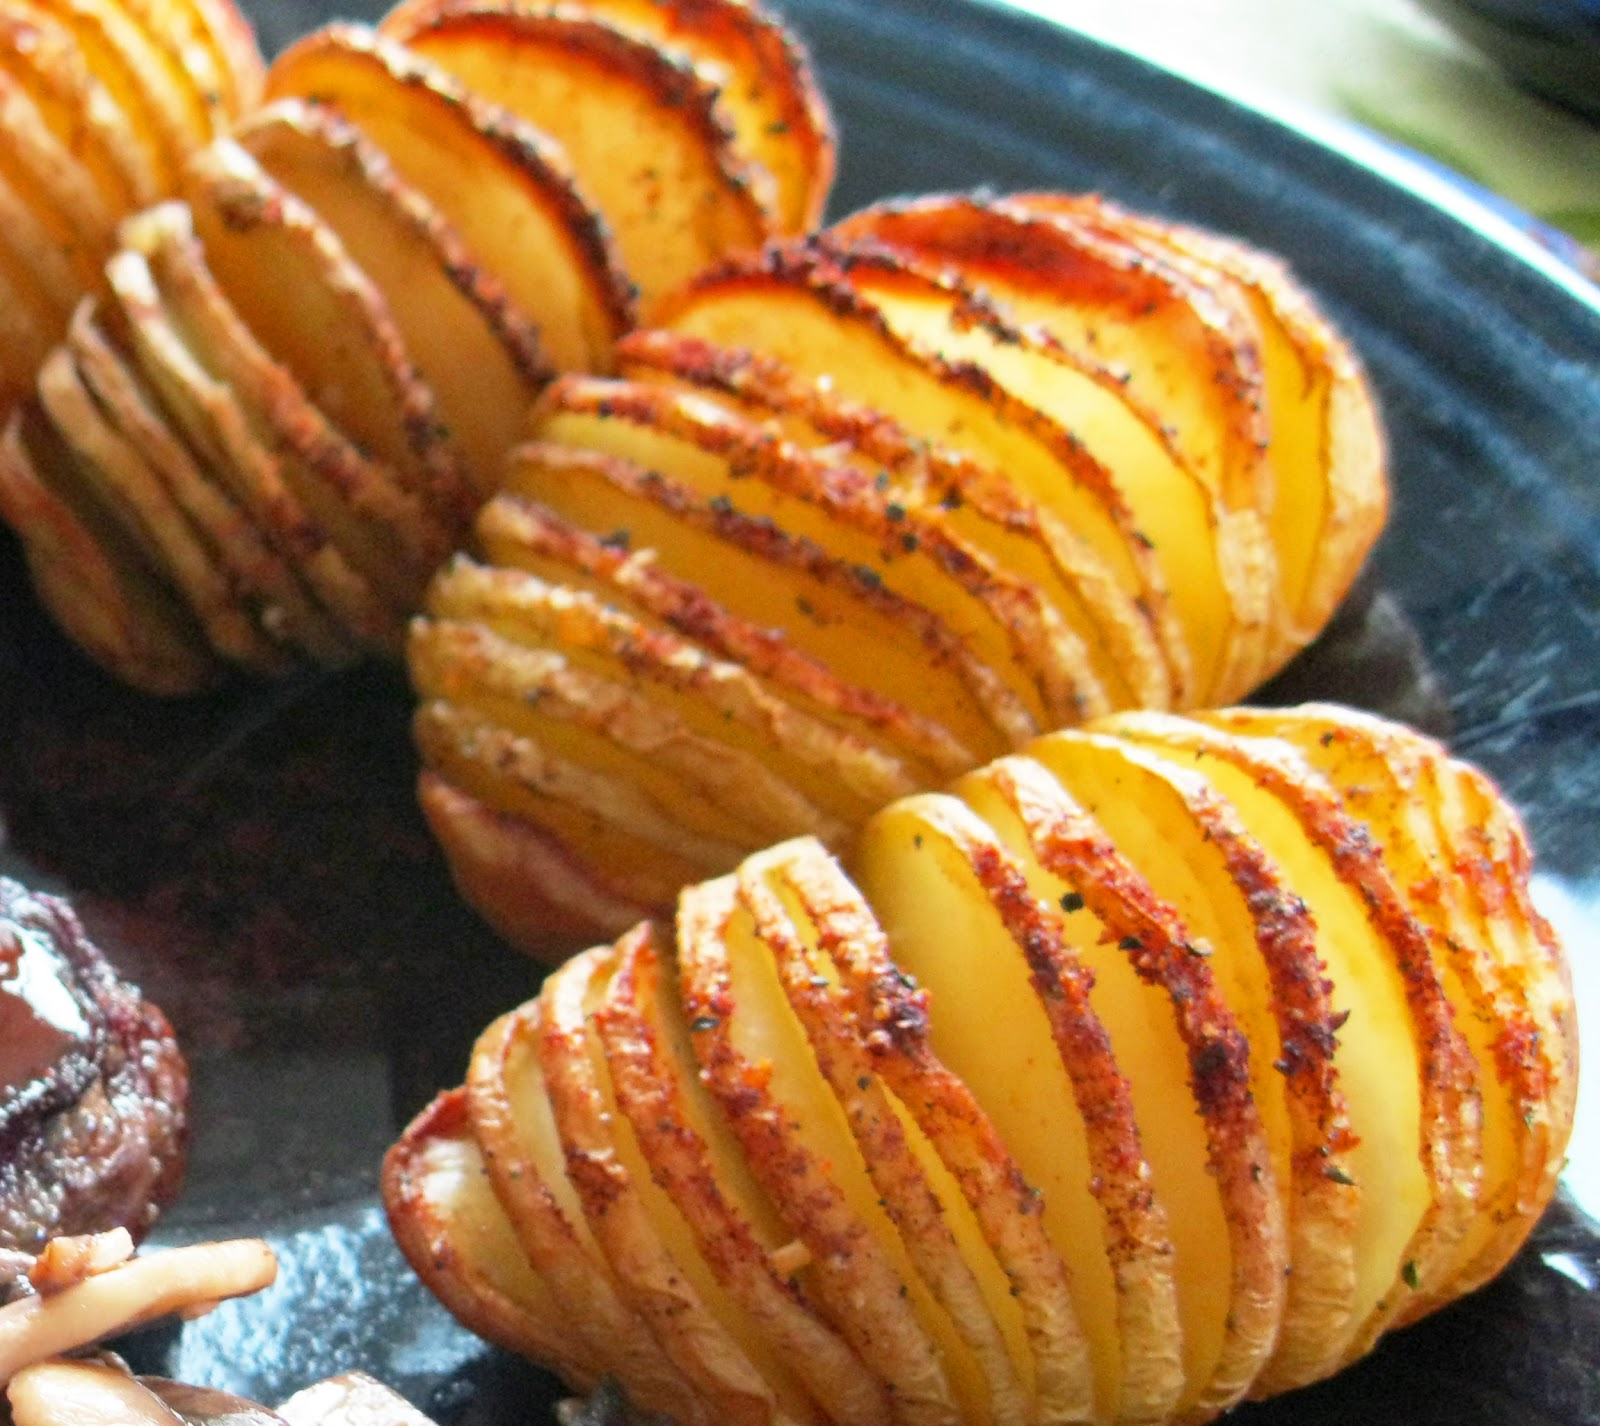 Healthy You: Sliced Baked Potatoes